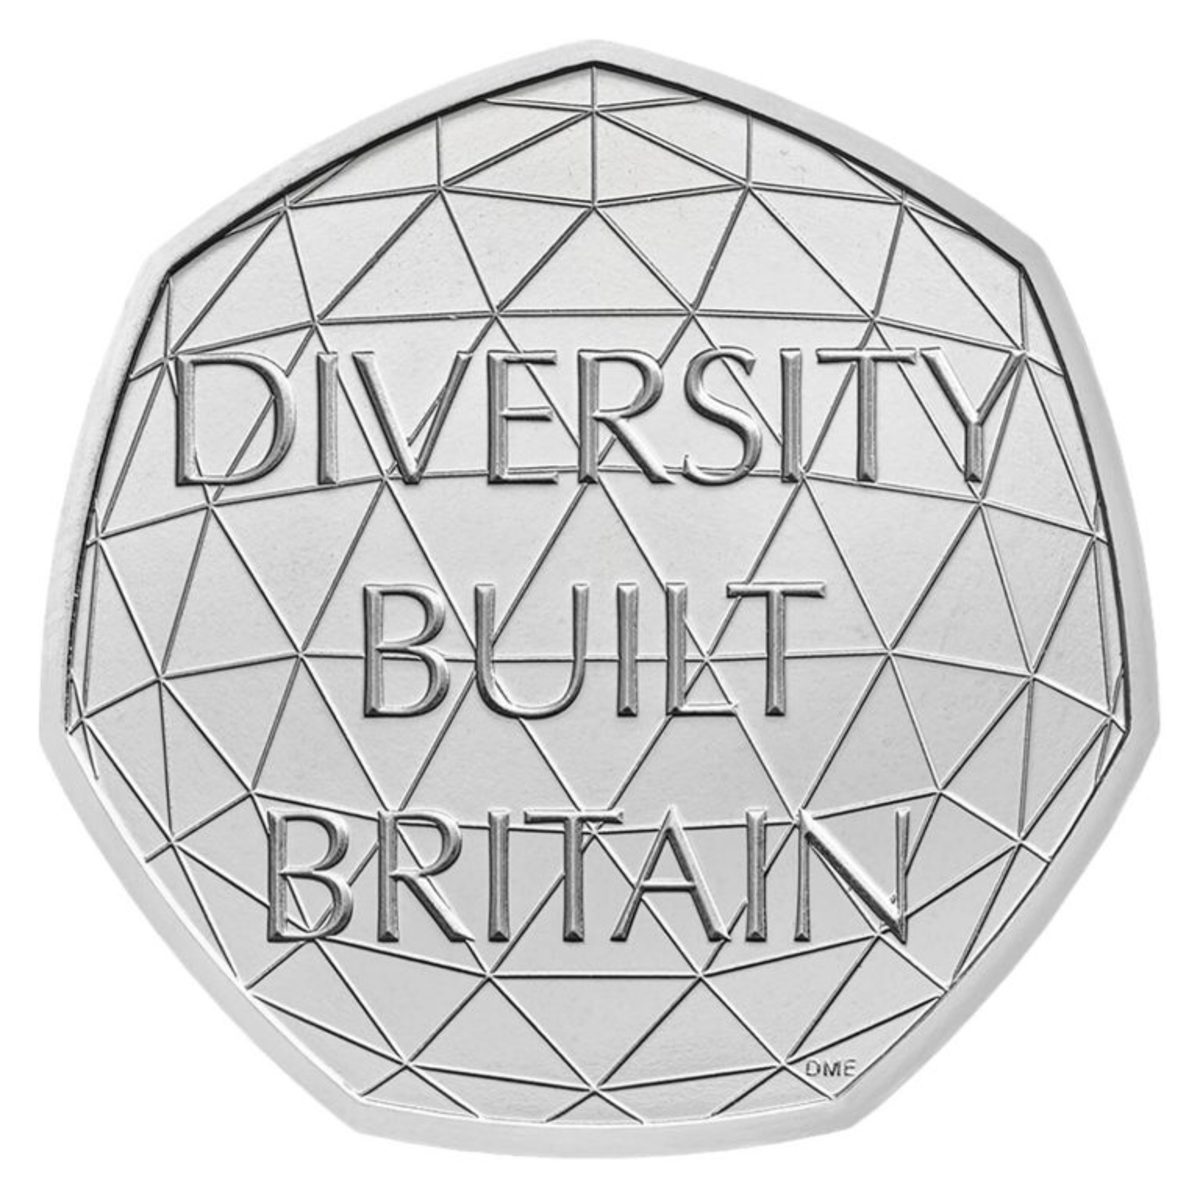 A connected concept design featured on the 50 pence honoring the great and diverse population that built modern-day Great Britain.